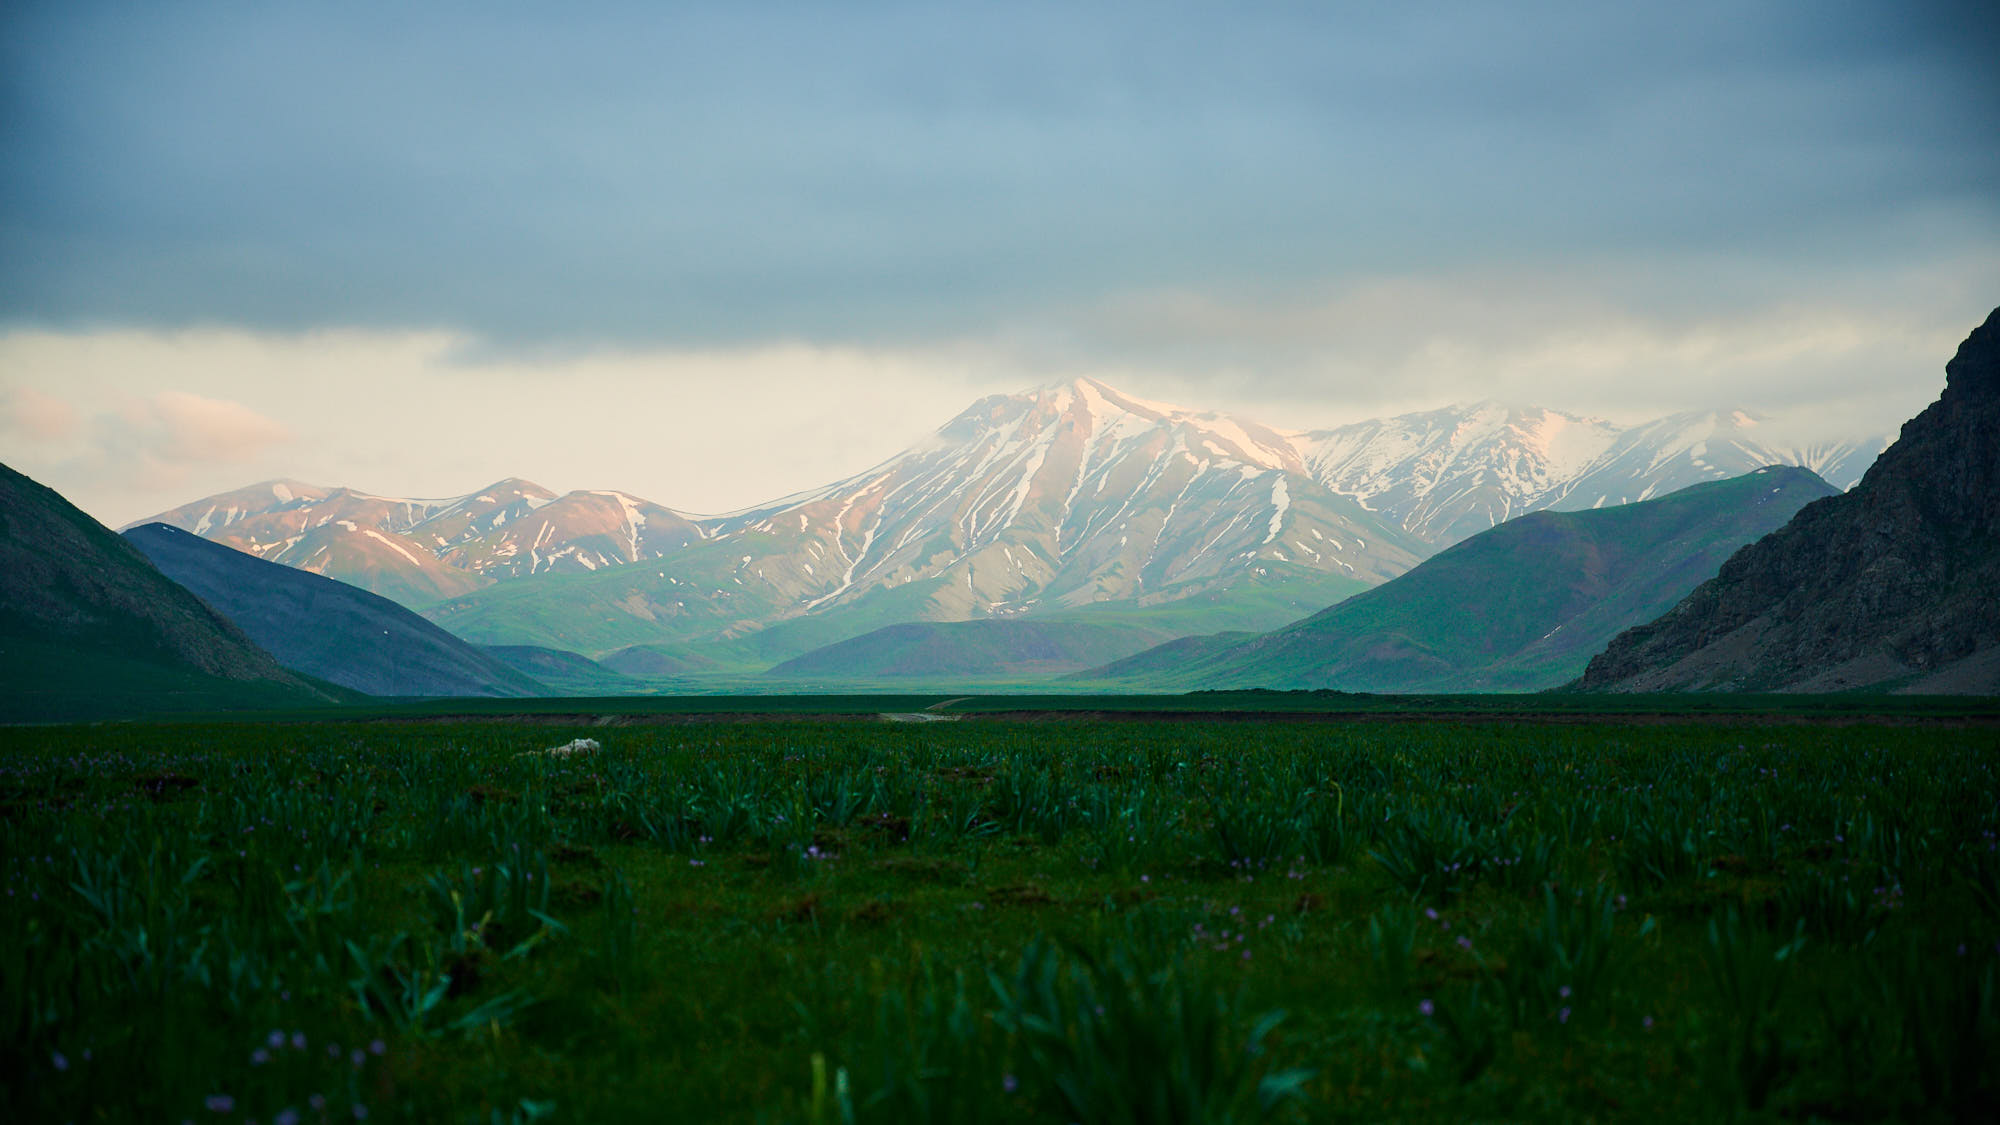 Moody landscape view of Dar valley in Iran